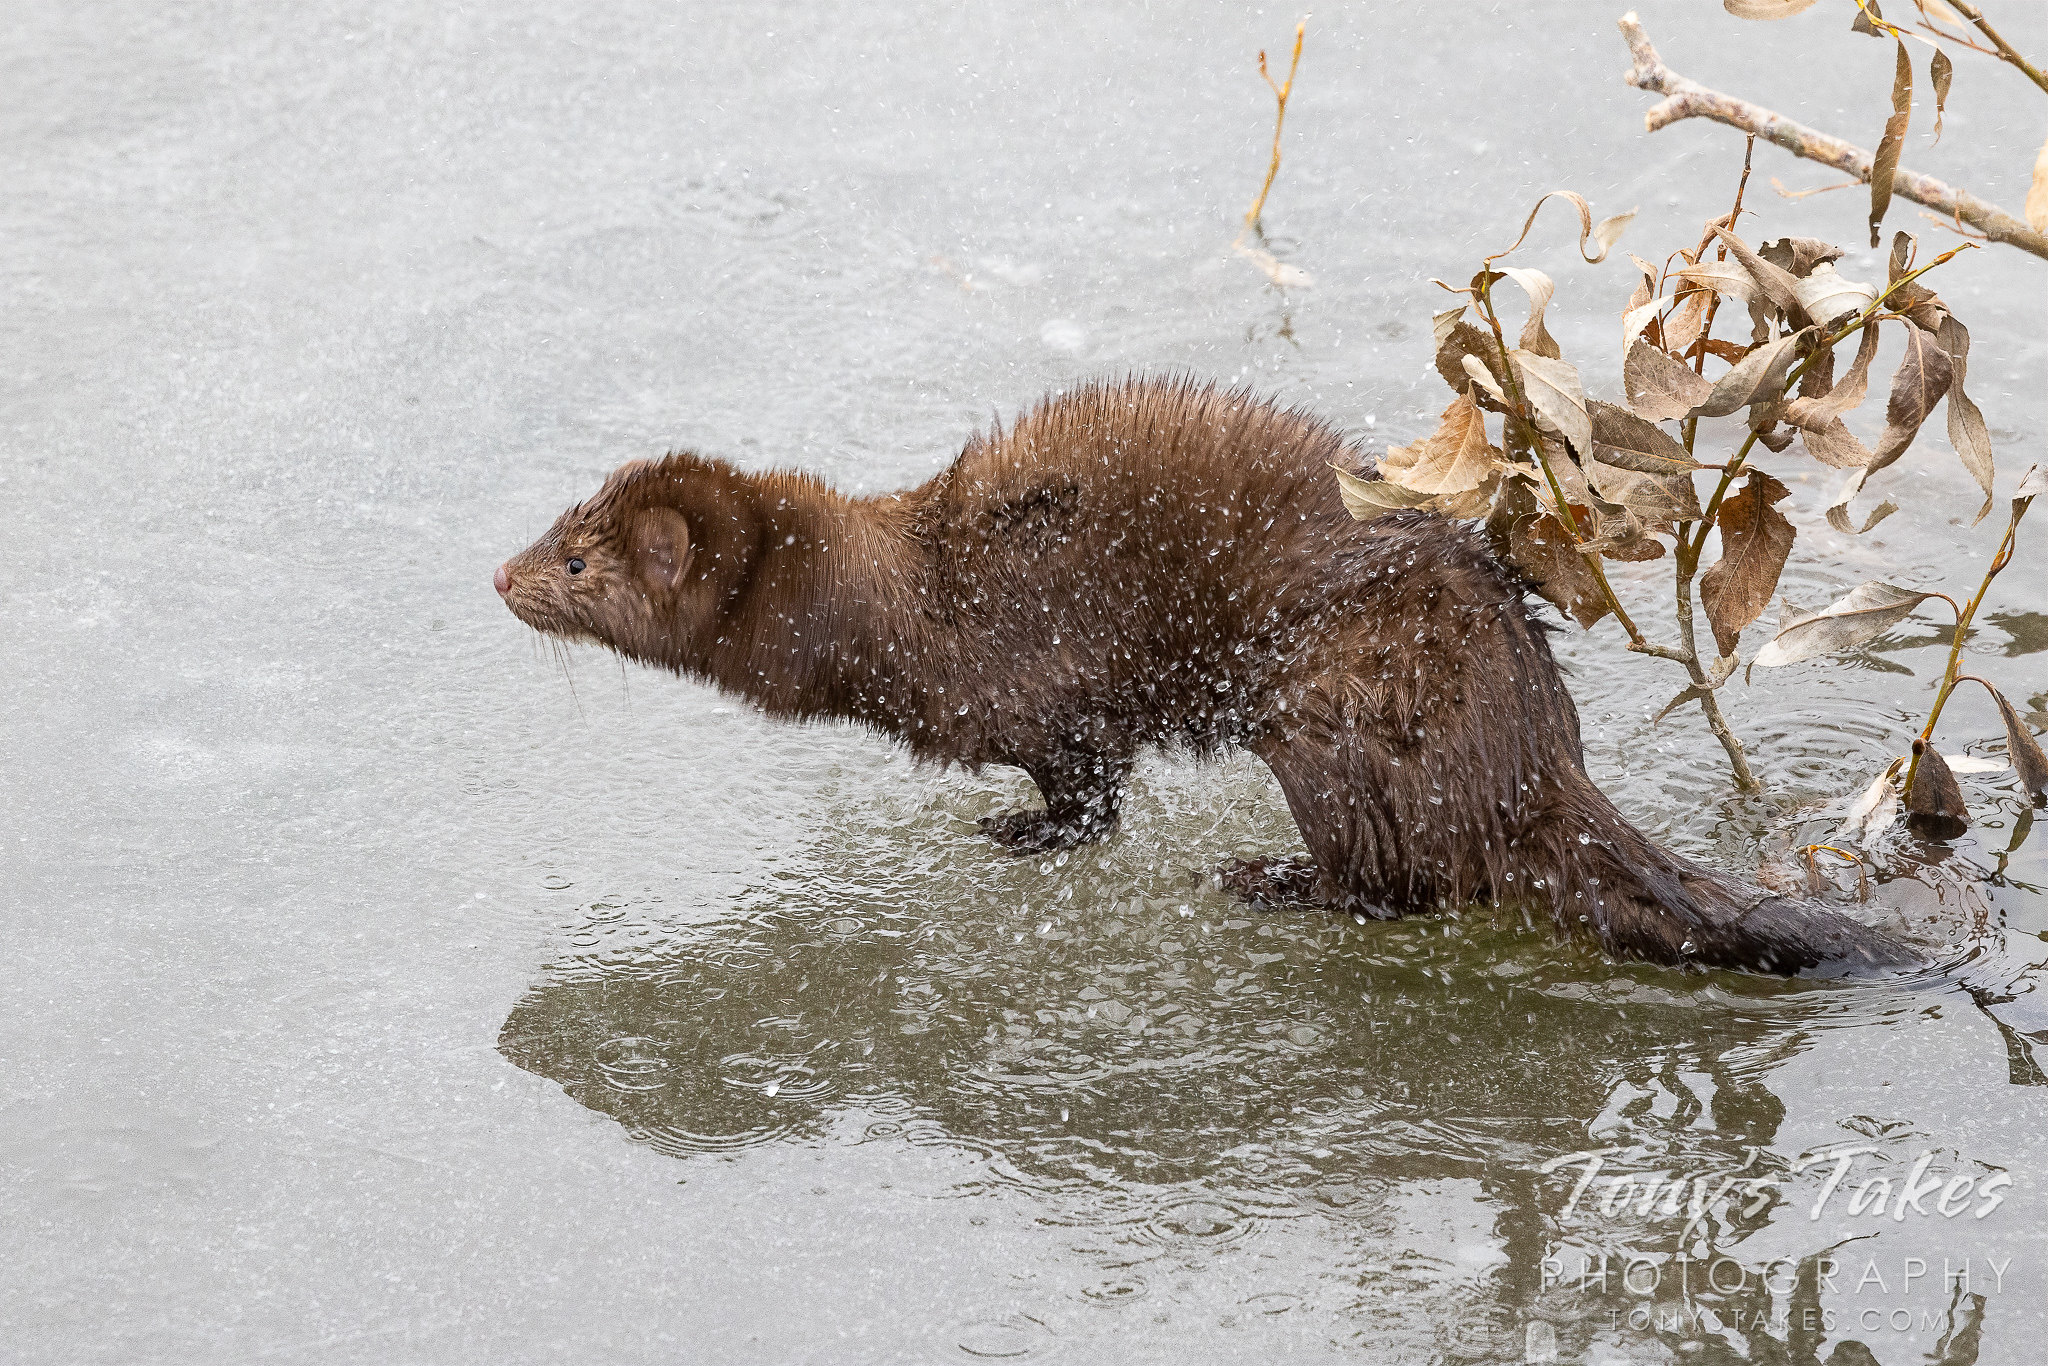 An American mink shakes off water after emerging from a creek. (Tony's Takes)